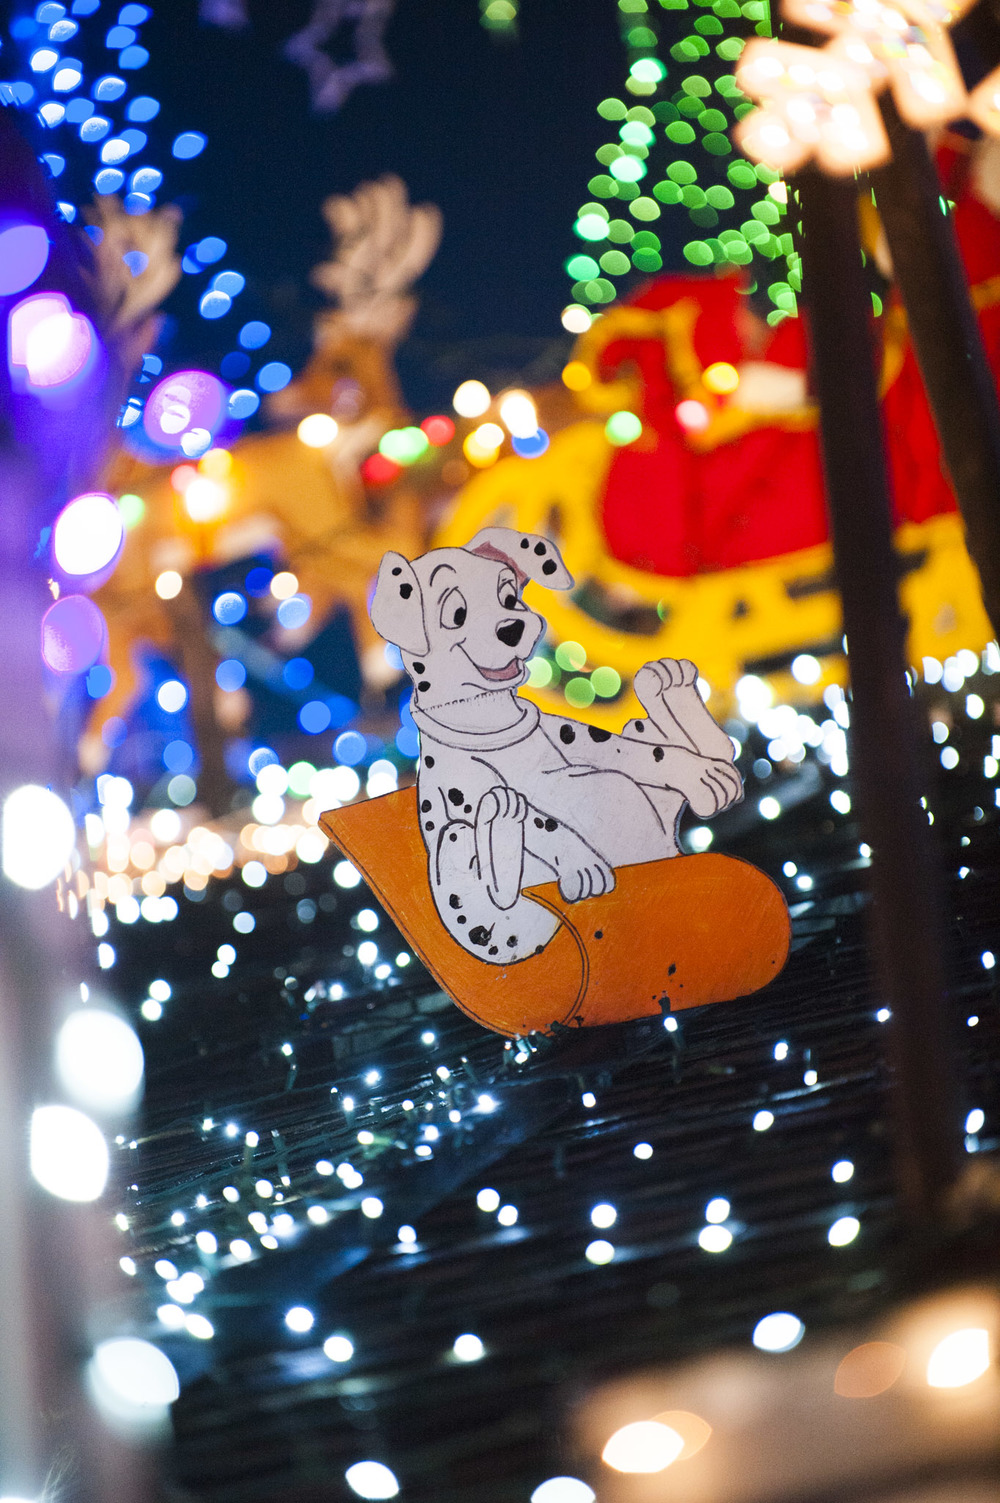 STAR // Connor Gibson Lights fill up the night sky in Rohnert Park as Weaver's Winter Wonderland attracts people across the state in celebration of the upcoming holidays. Scott Weaver has been putting Christmas decorations for more than 20 years and it takes him about five weeks to completely set up the decorations.  The ornaments represent something from his own personal life, like the coin represents sobriety and the angel represented his mother whose actual canes were used as candy cane decorations.